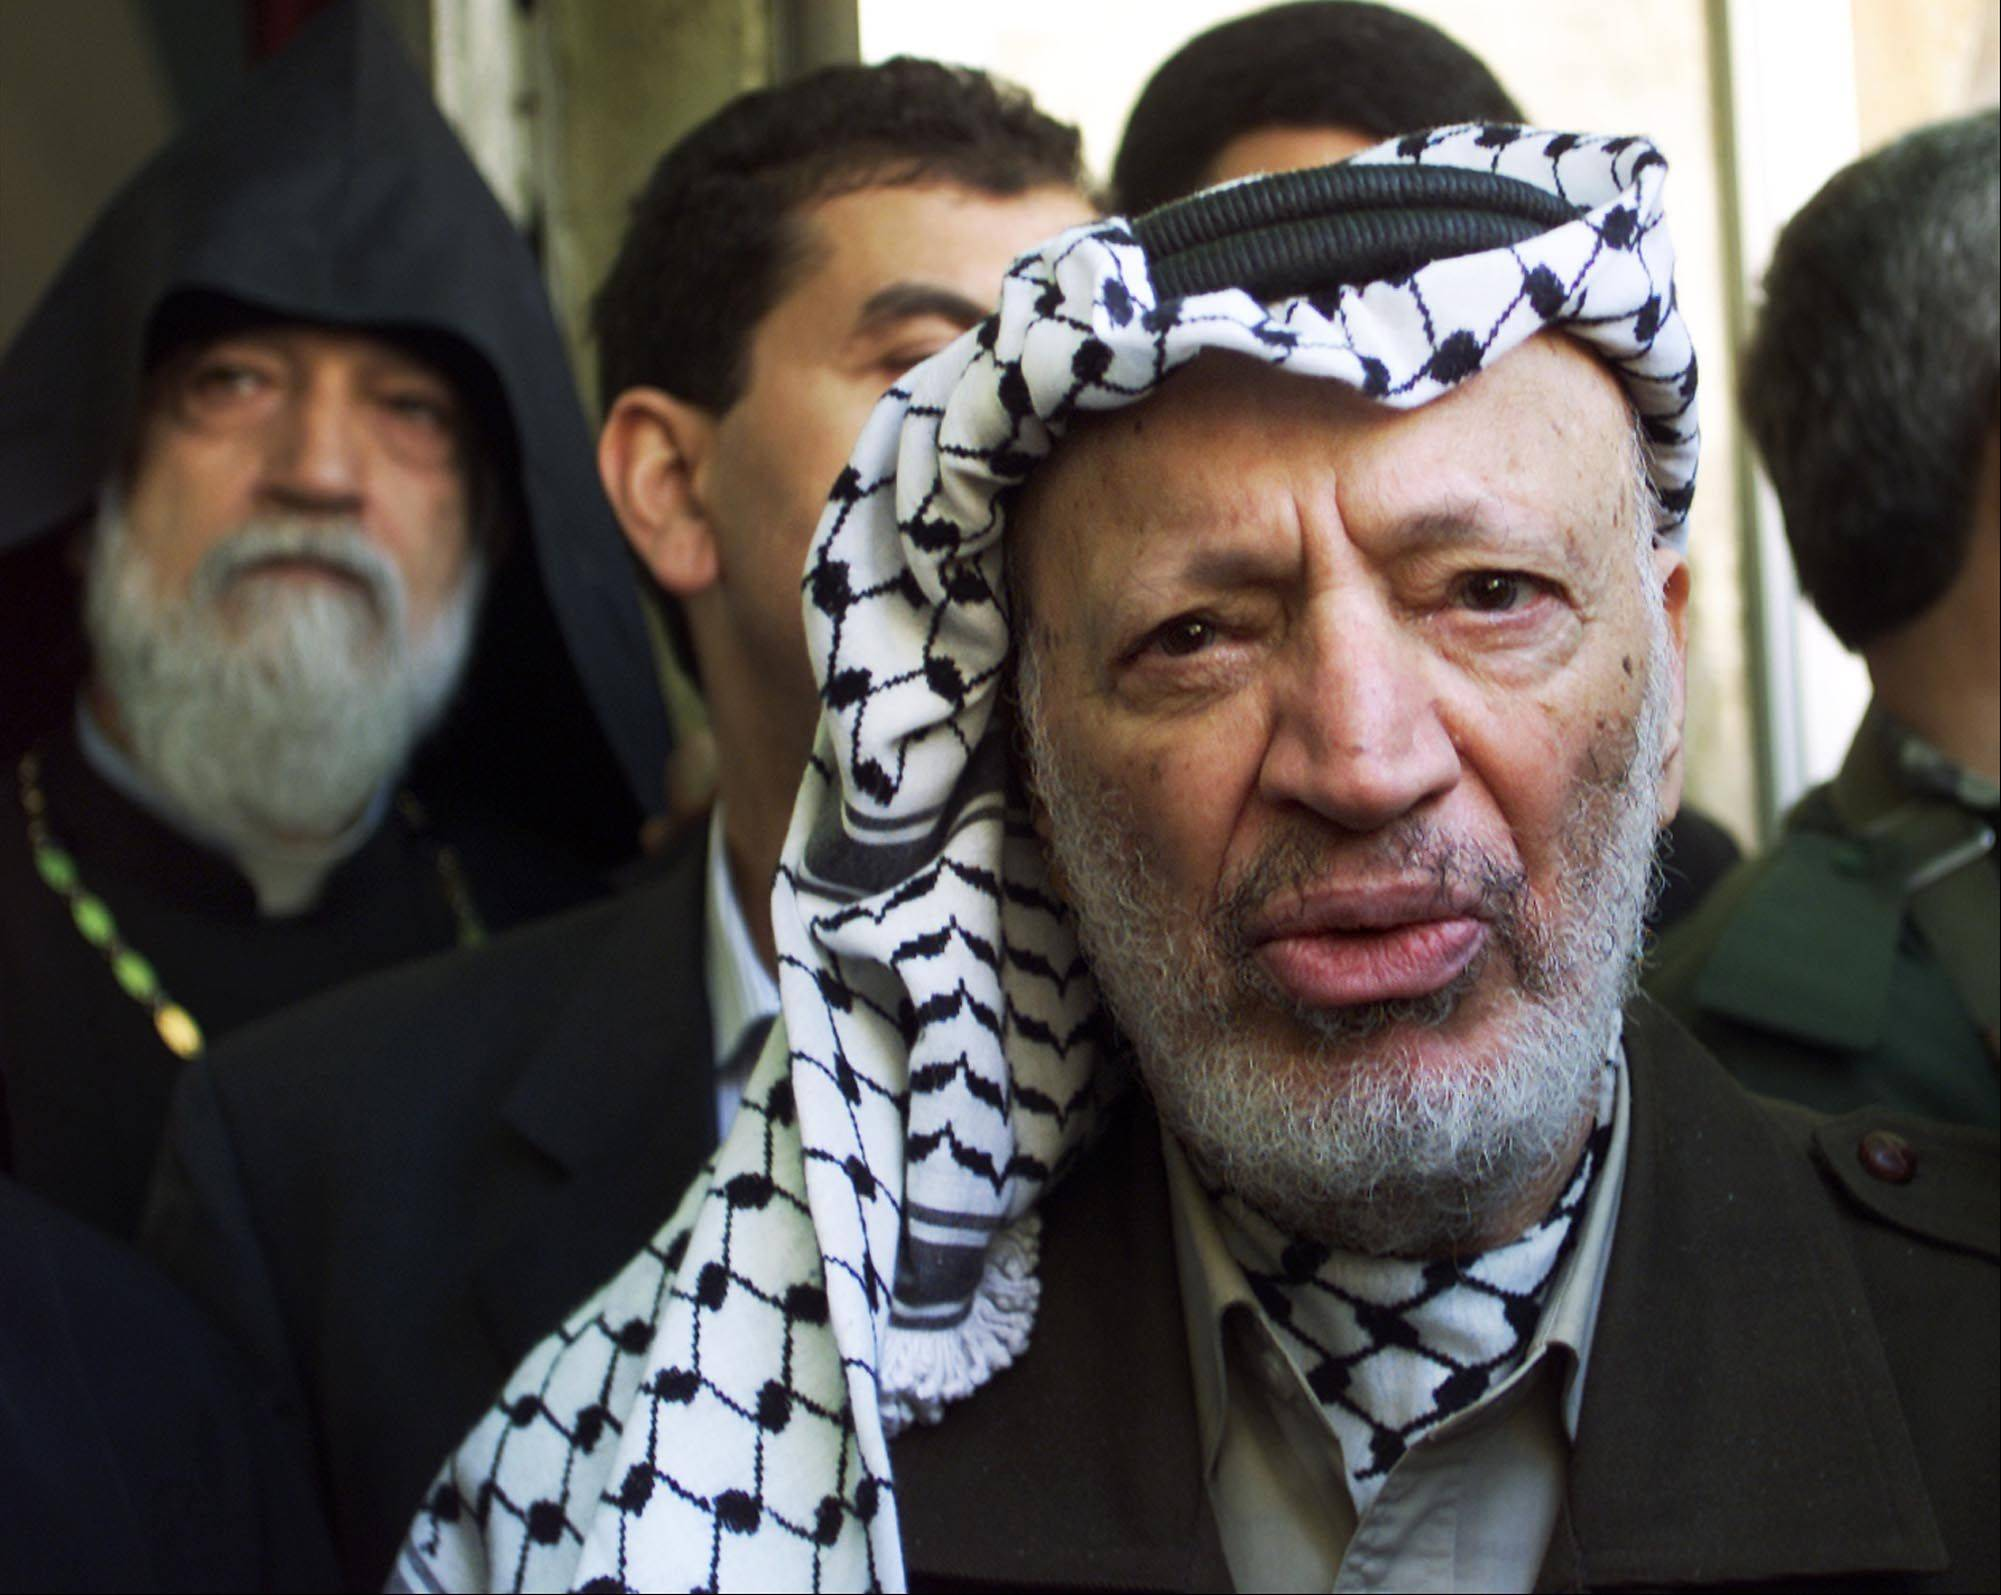 The remains of Palestinian leader Yasser Arafat will be exhumed for examination of foul play, his widow said Wednesday.